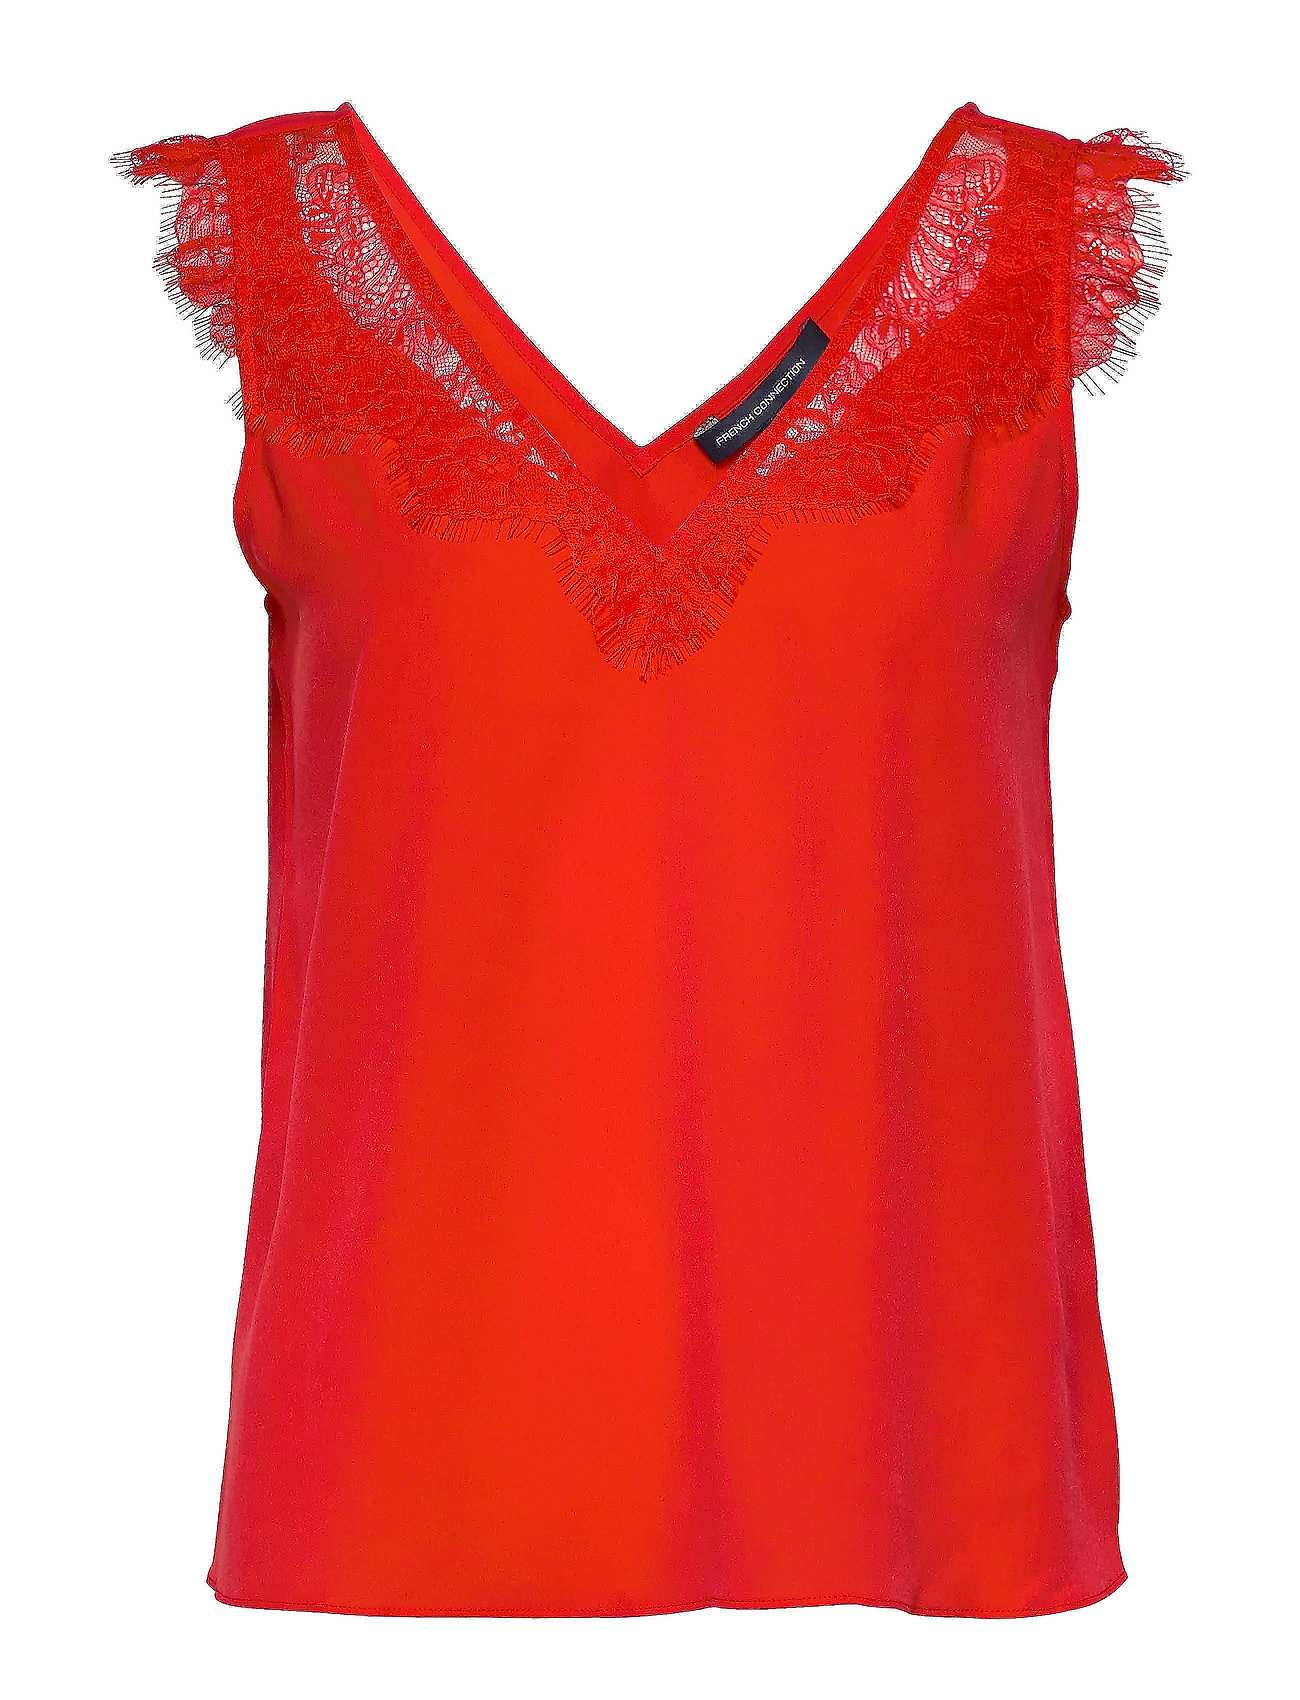 French Connection CHIOMA LIGHT LACE TOP - POPPY RED